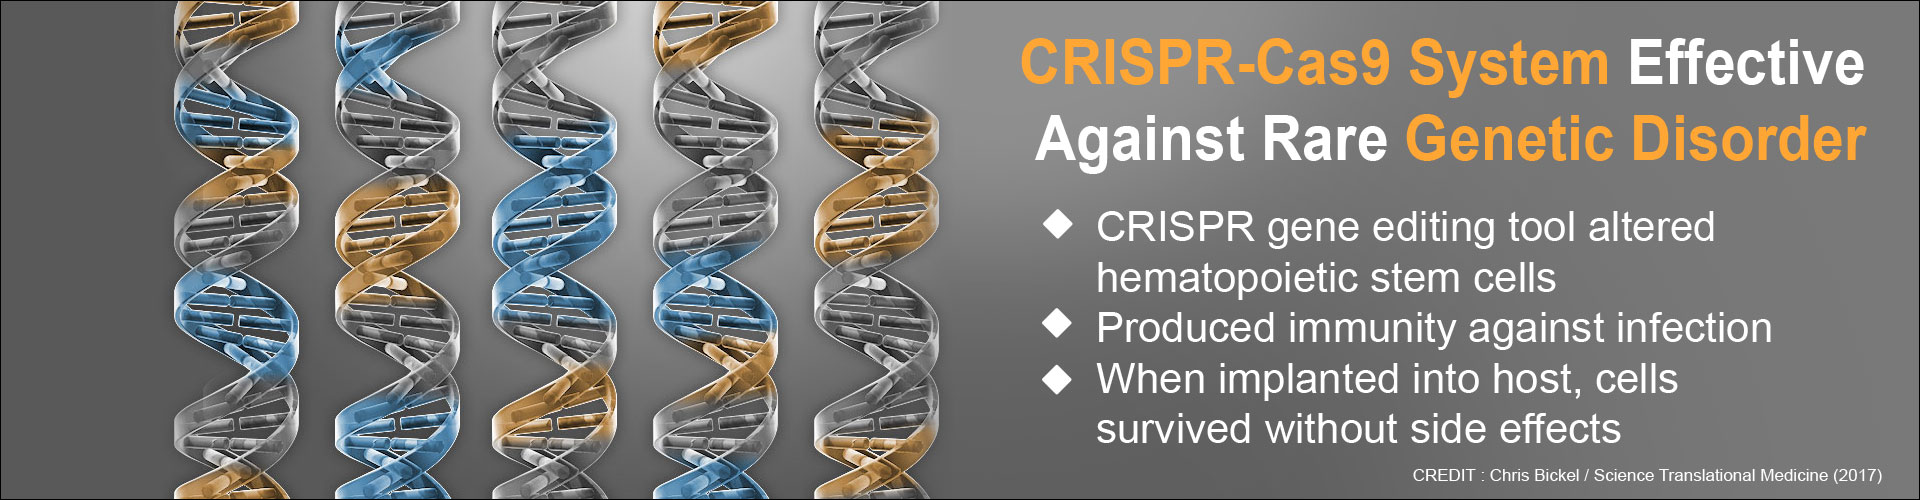 CRISPR-Cas9 Effective Against Genetic Disorder